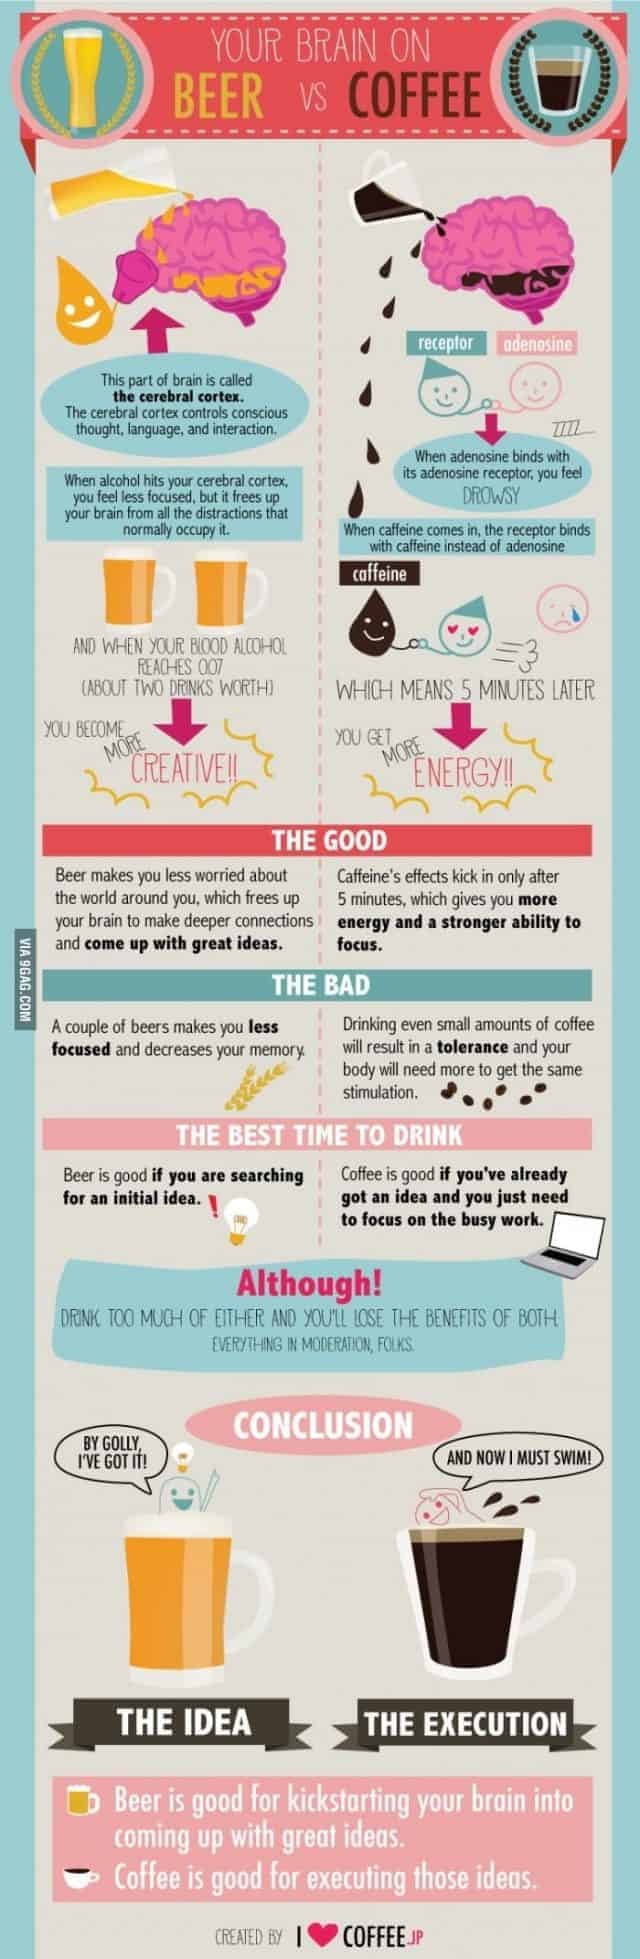 Beer vs coffee infographic